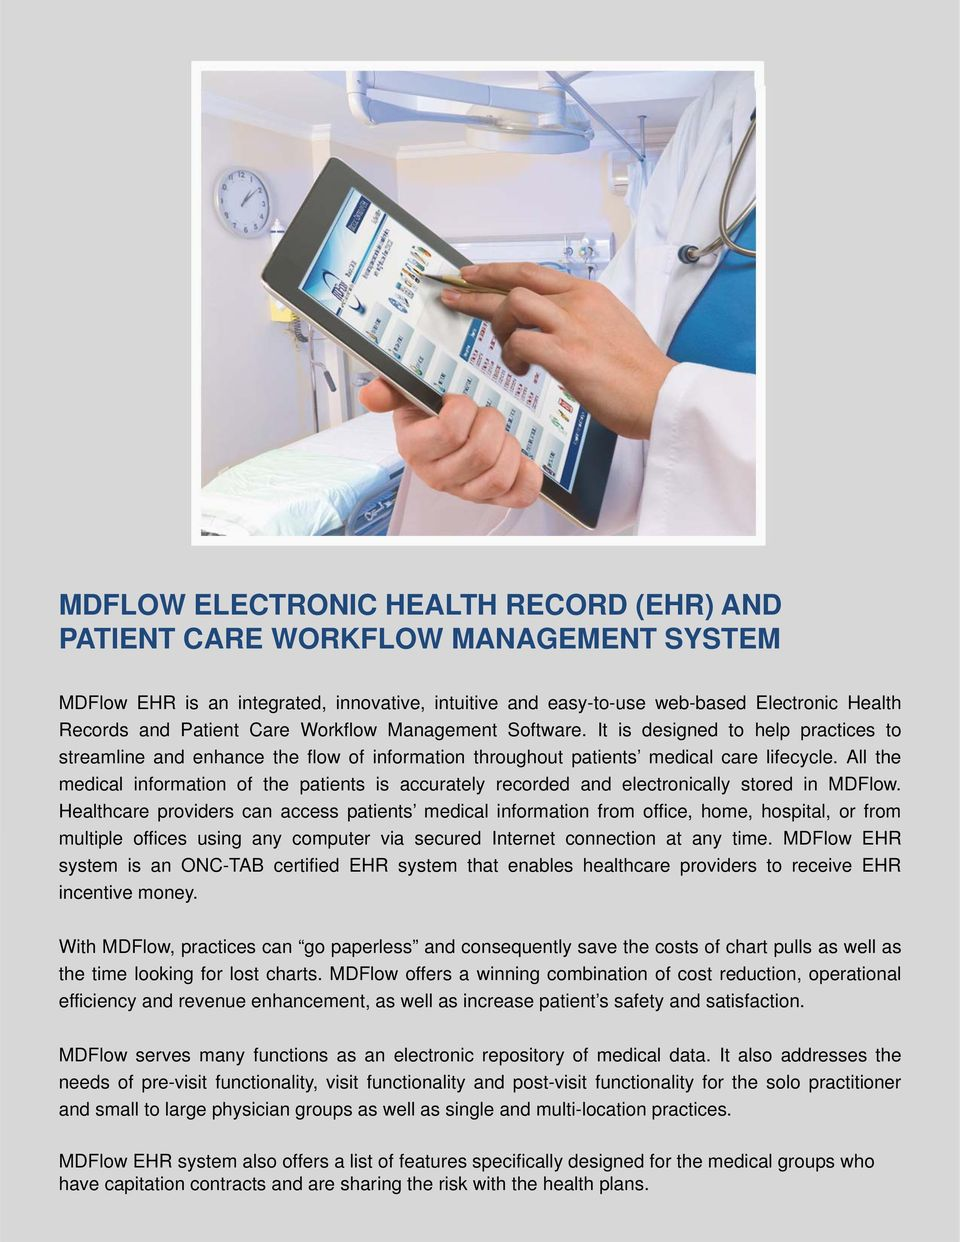 All the medical information of the patients is accurately recorded and electronically stored in MDFlow.